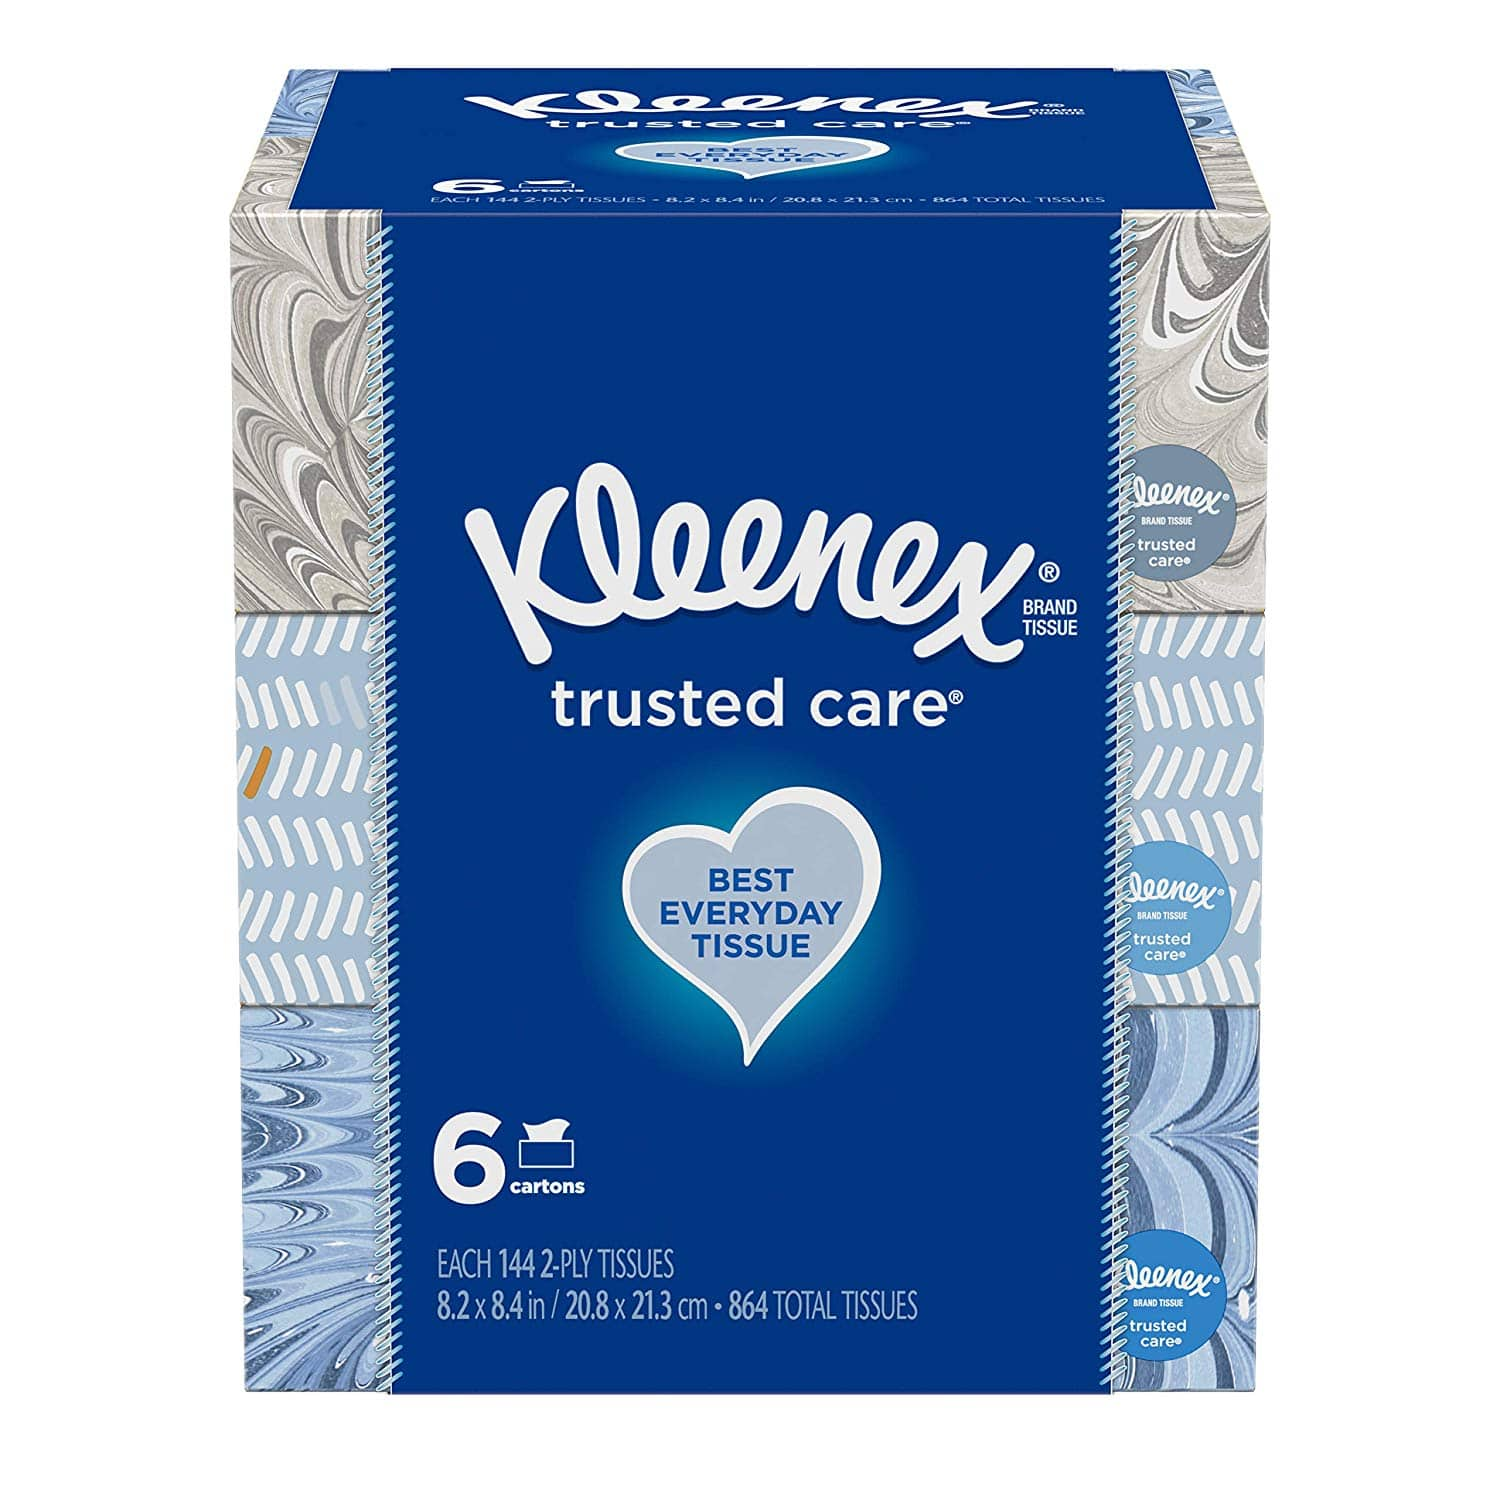 18-Pack 144-Count Kleenex Trusted Care Everyday Facial Tissues $14.18 ($0.79 each) w/ S&S + Free S&H